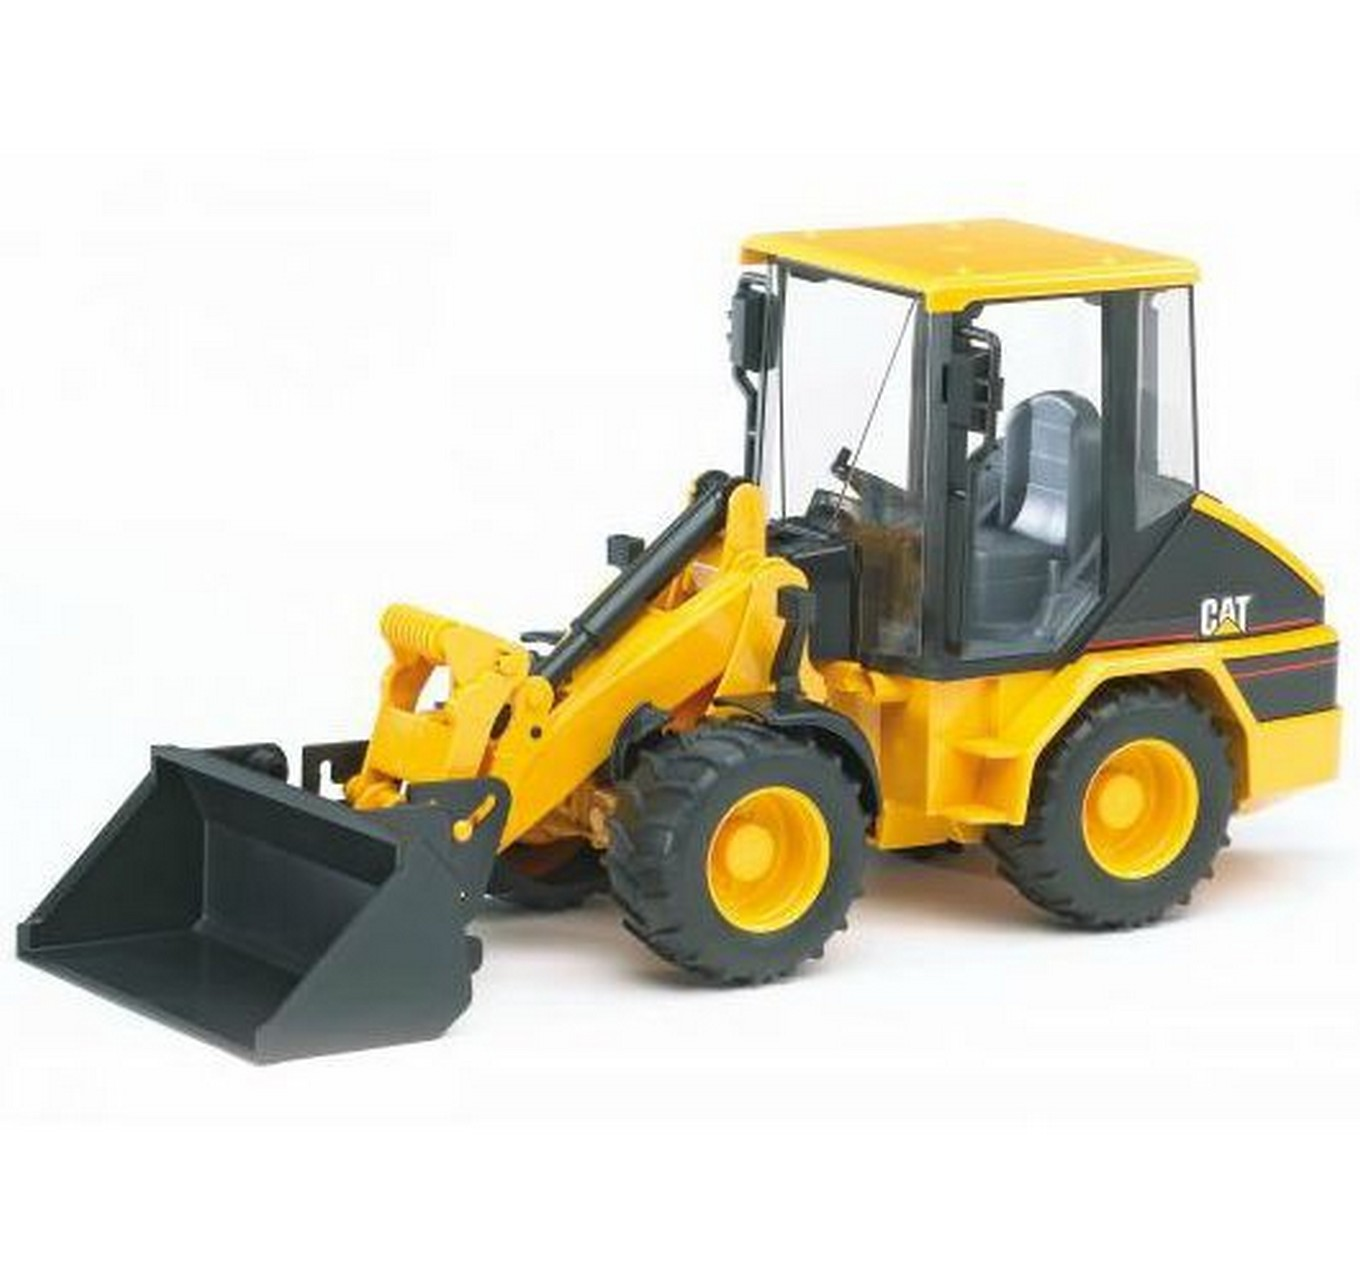 CAT Compact Loader